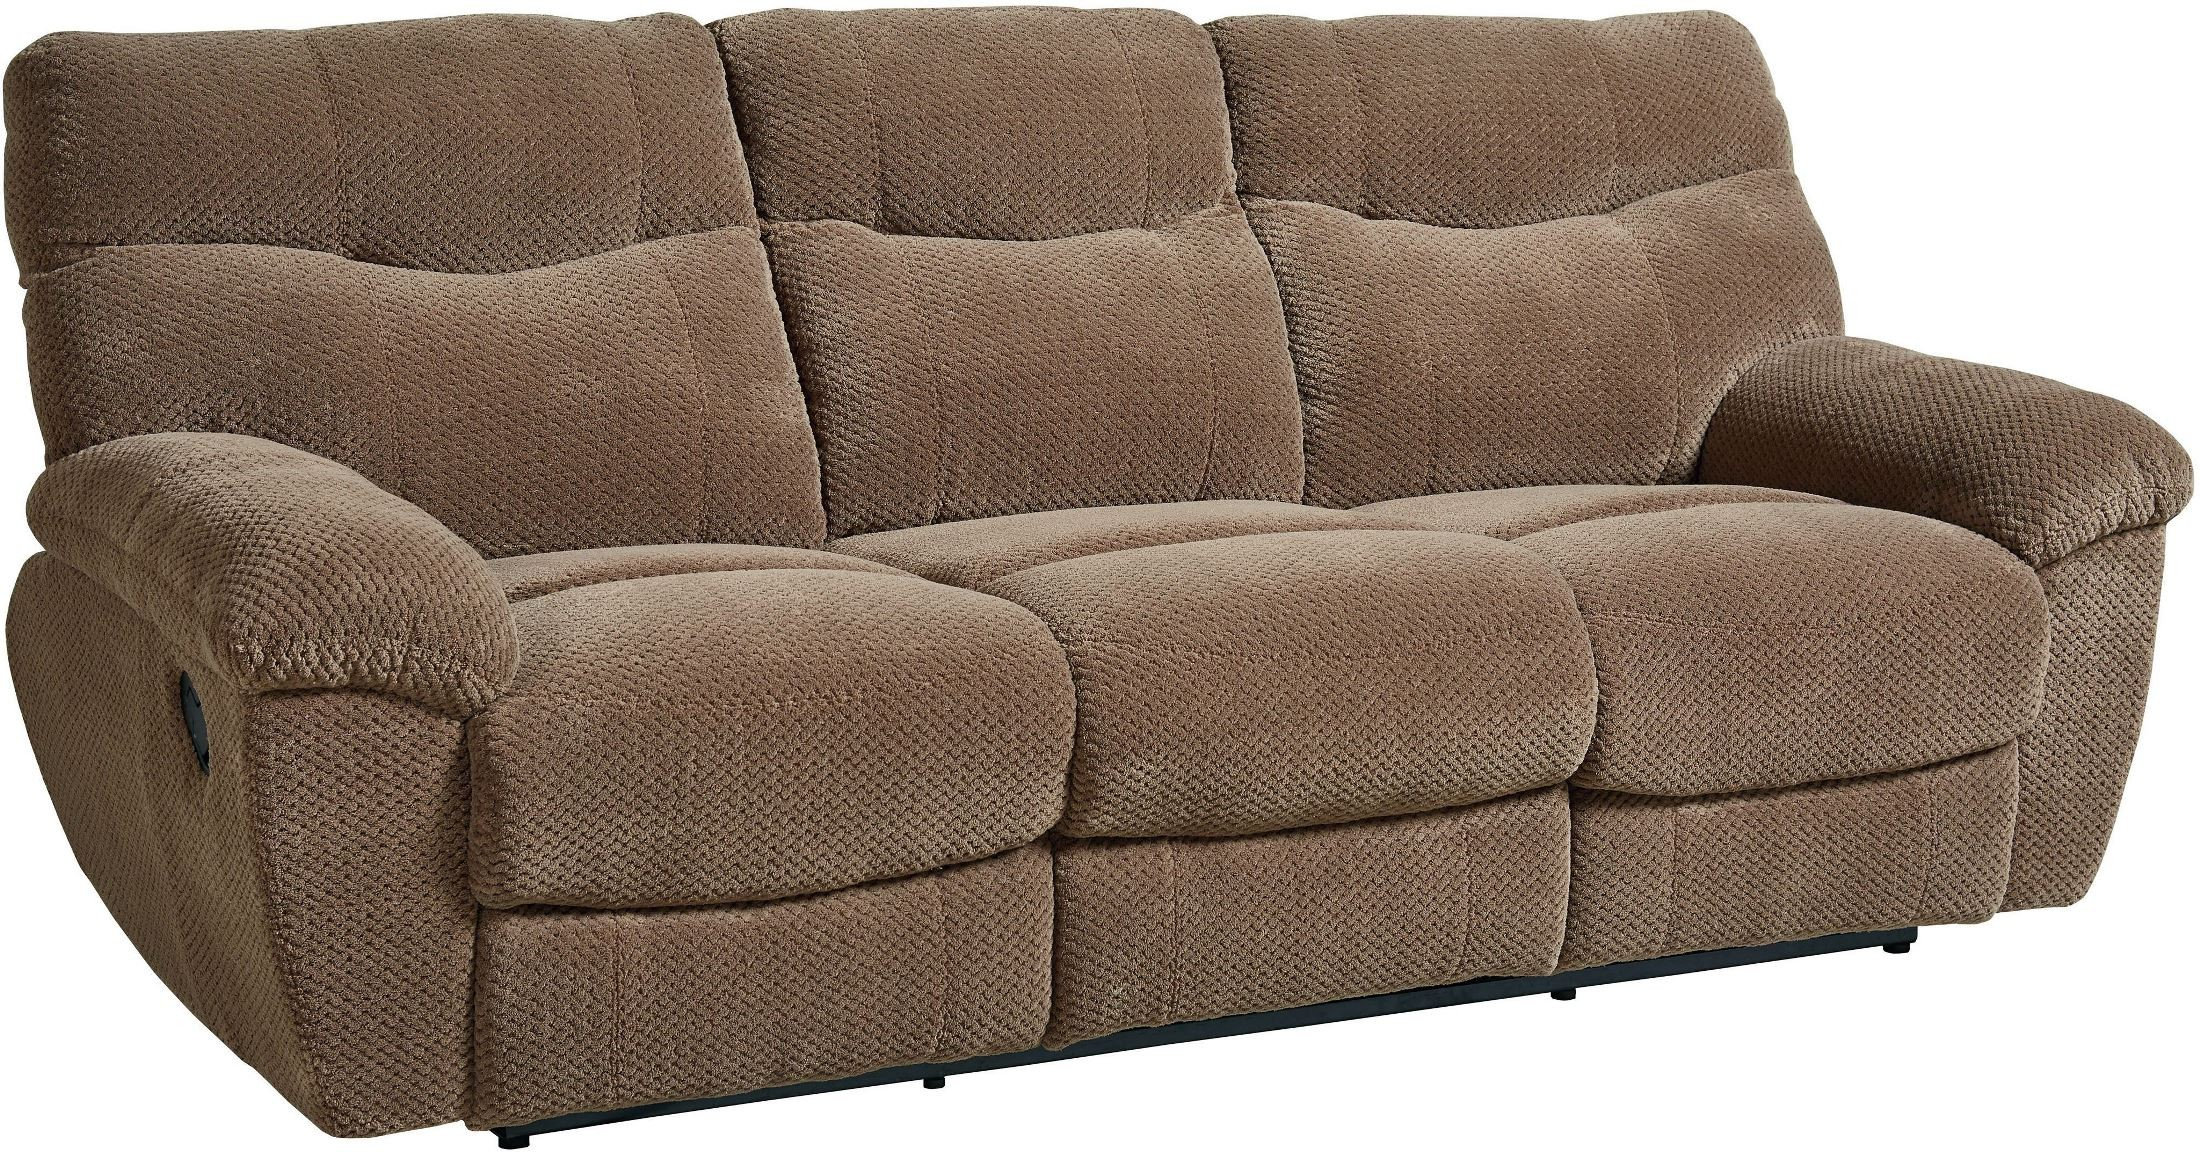 Escapade Taupe Brown Reclining Sofa 4012391 Standard